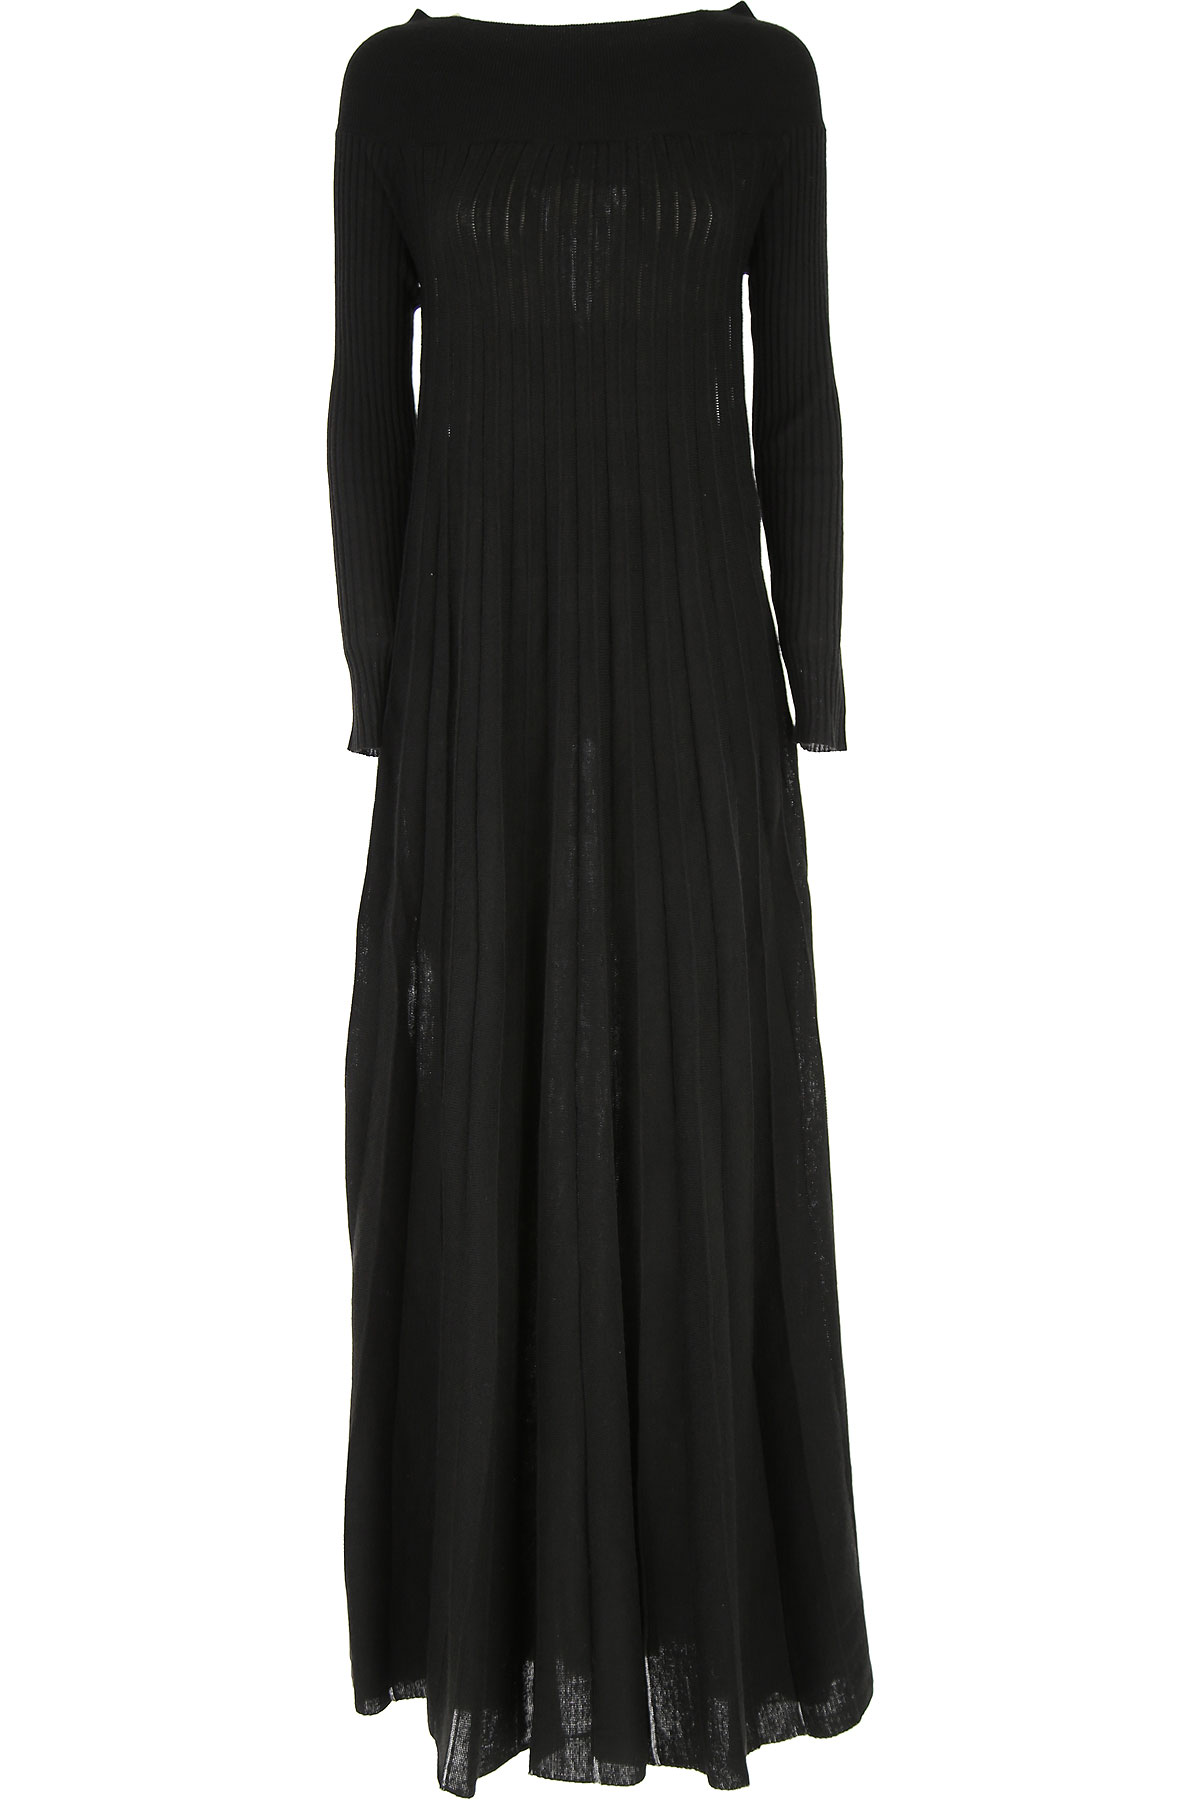 Lautre Chose Dress for Women, Evening Cocktail Party On Sale, Black, Wool, 2019, 4 6